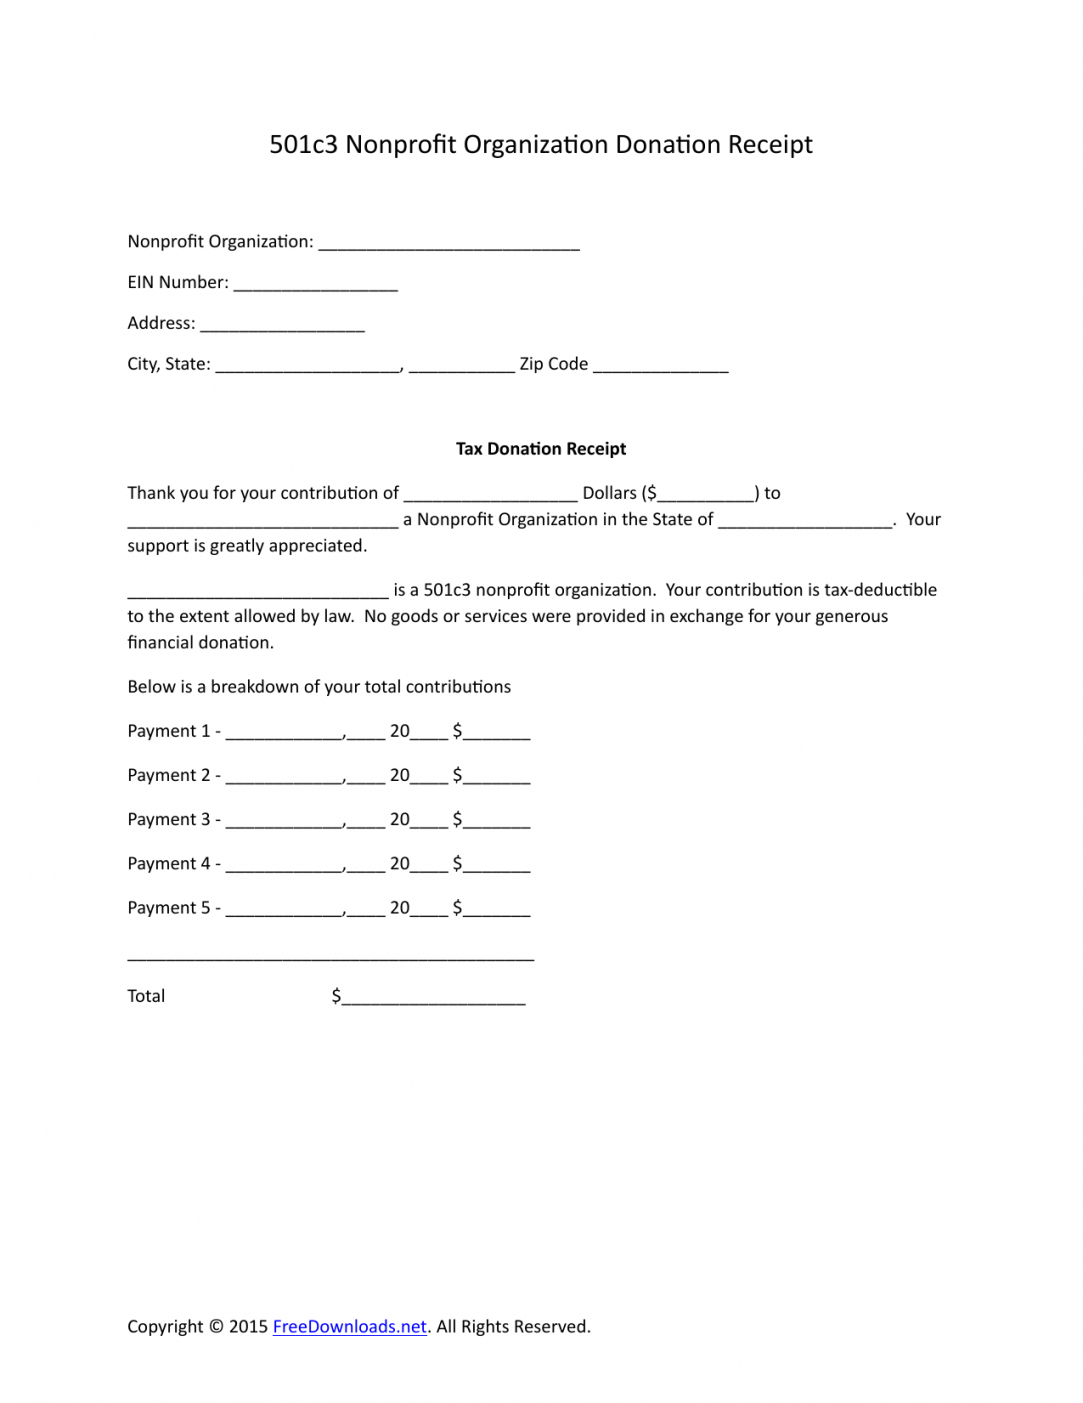 free download 501c3 donation receipt letter for tax purposes tax write off donation letter template doc